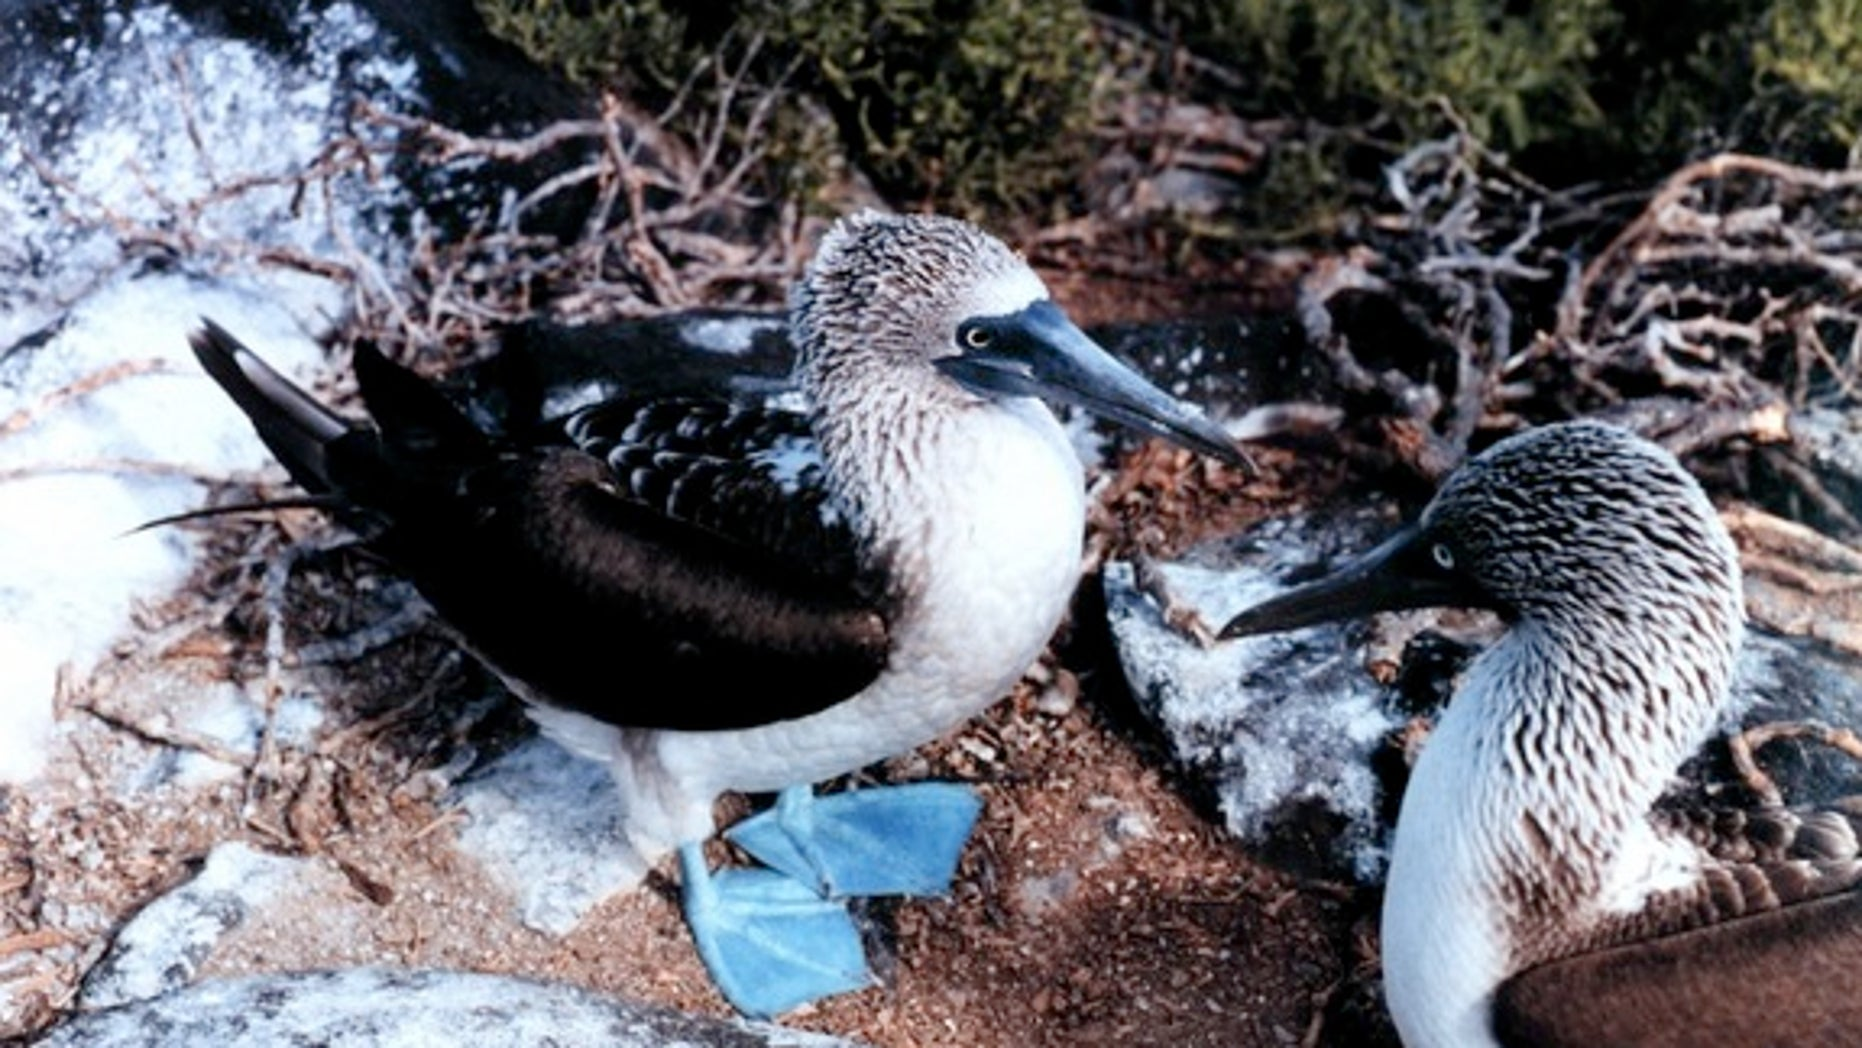 Invasive rodents threaten the eggs of Galapagos island birds, such as these blue-footed boobies photographed on Espanola Island.